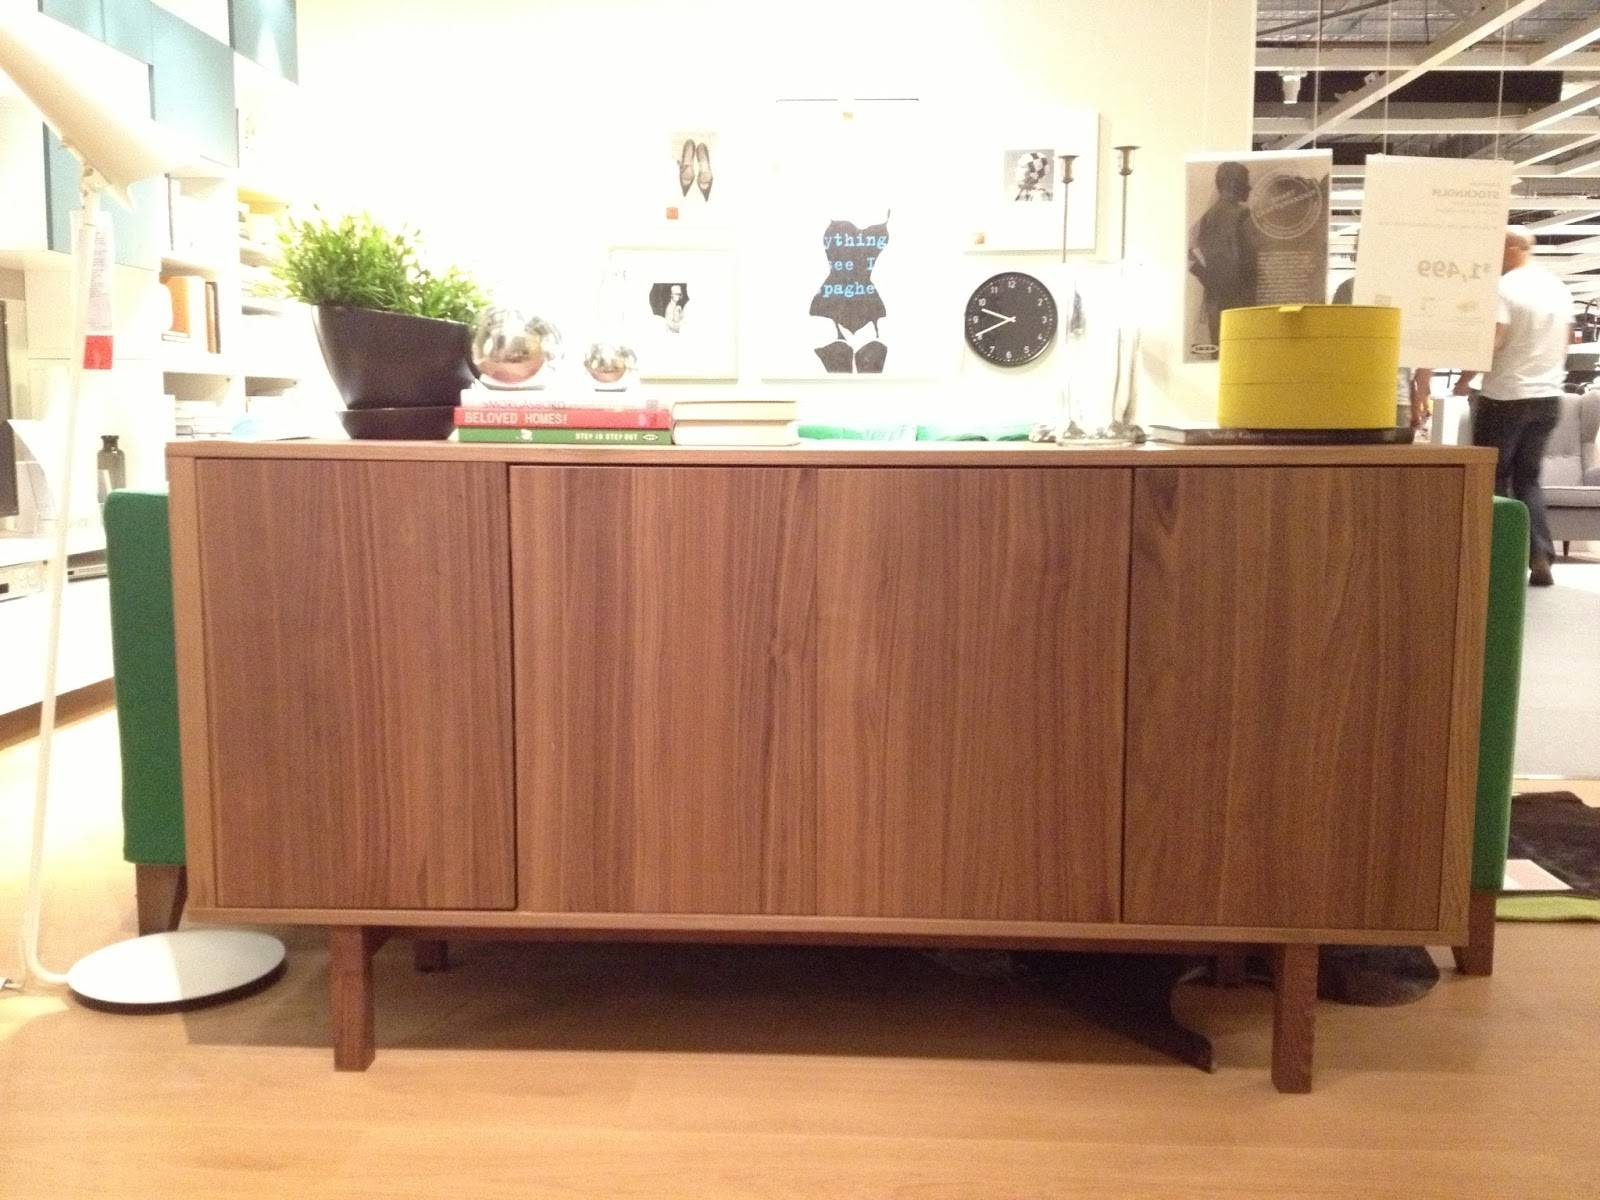 Awesome Ikea Stockholm Sideboard – Bjdgjy With Most Recently Released Ikea Stockholm Sideboards (#6 of 15)